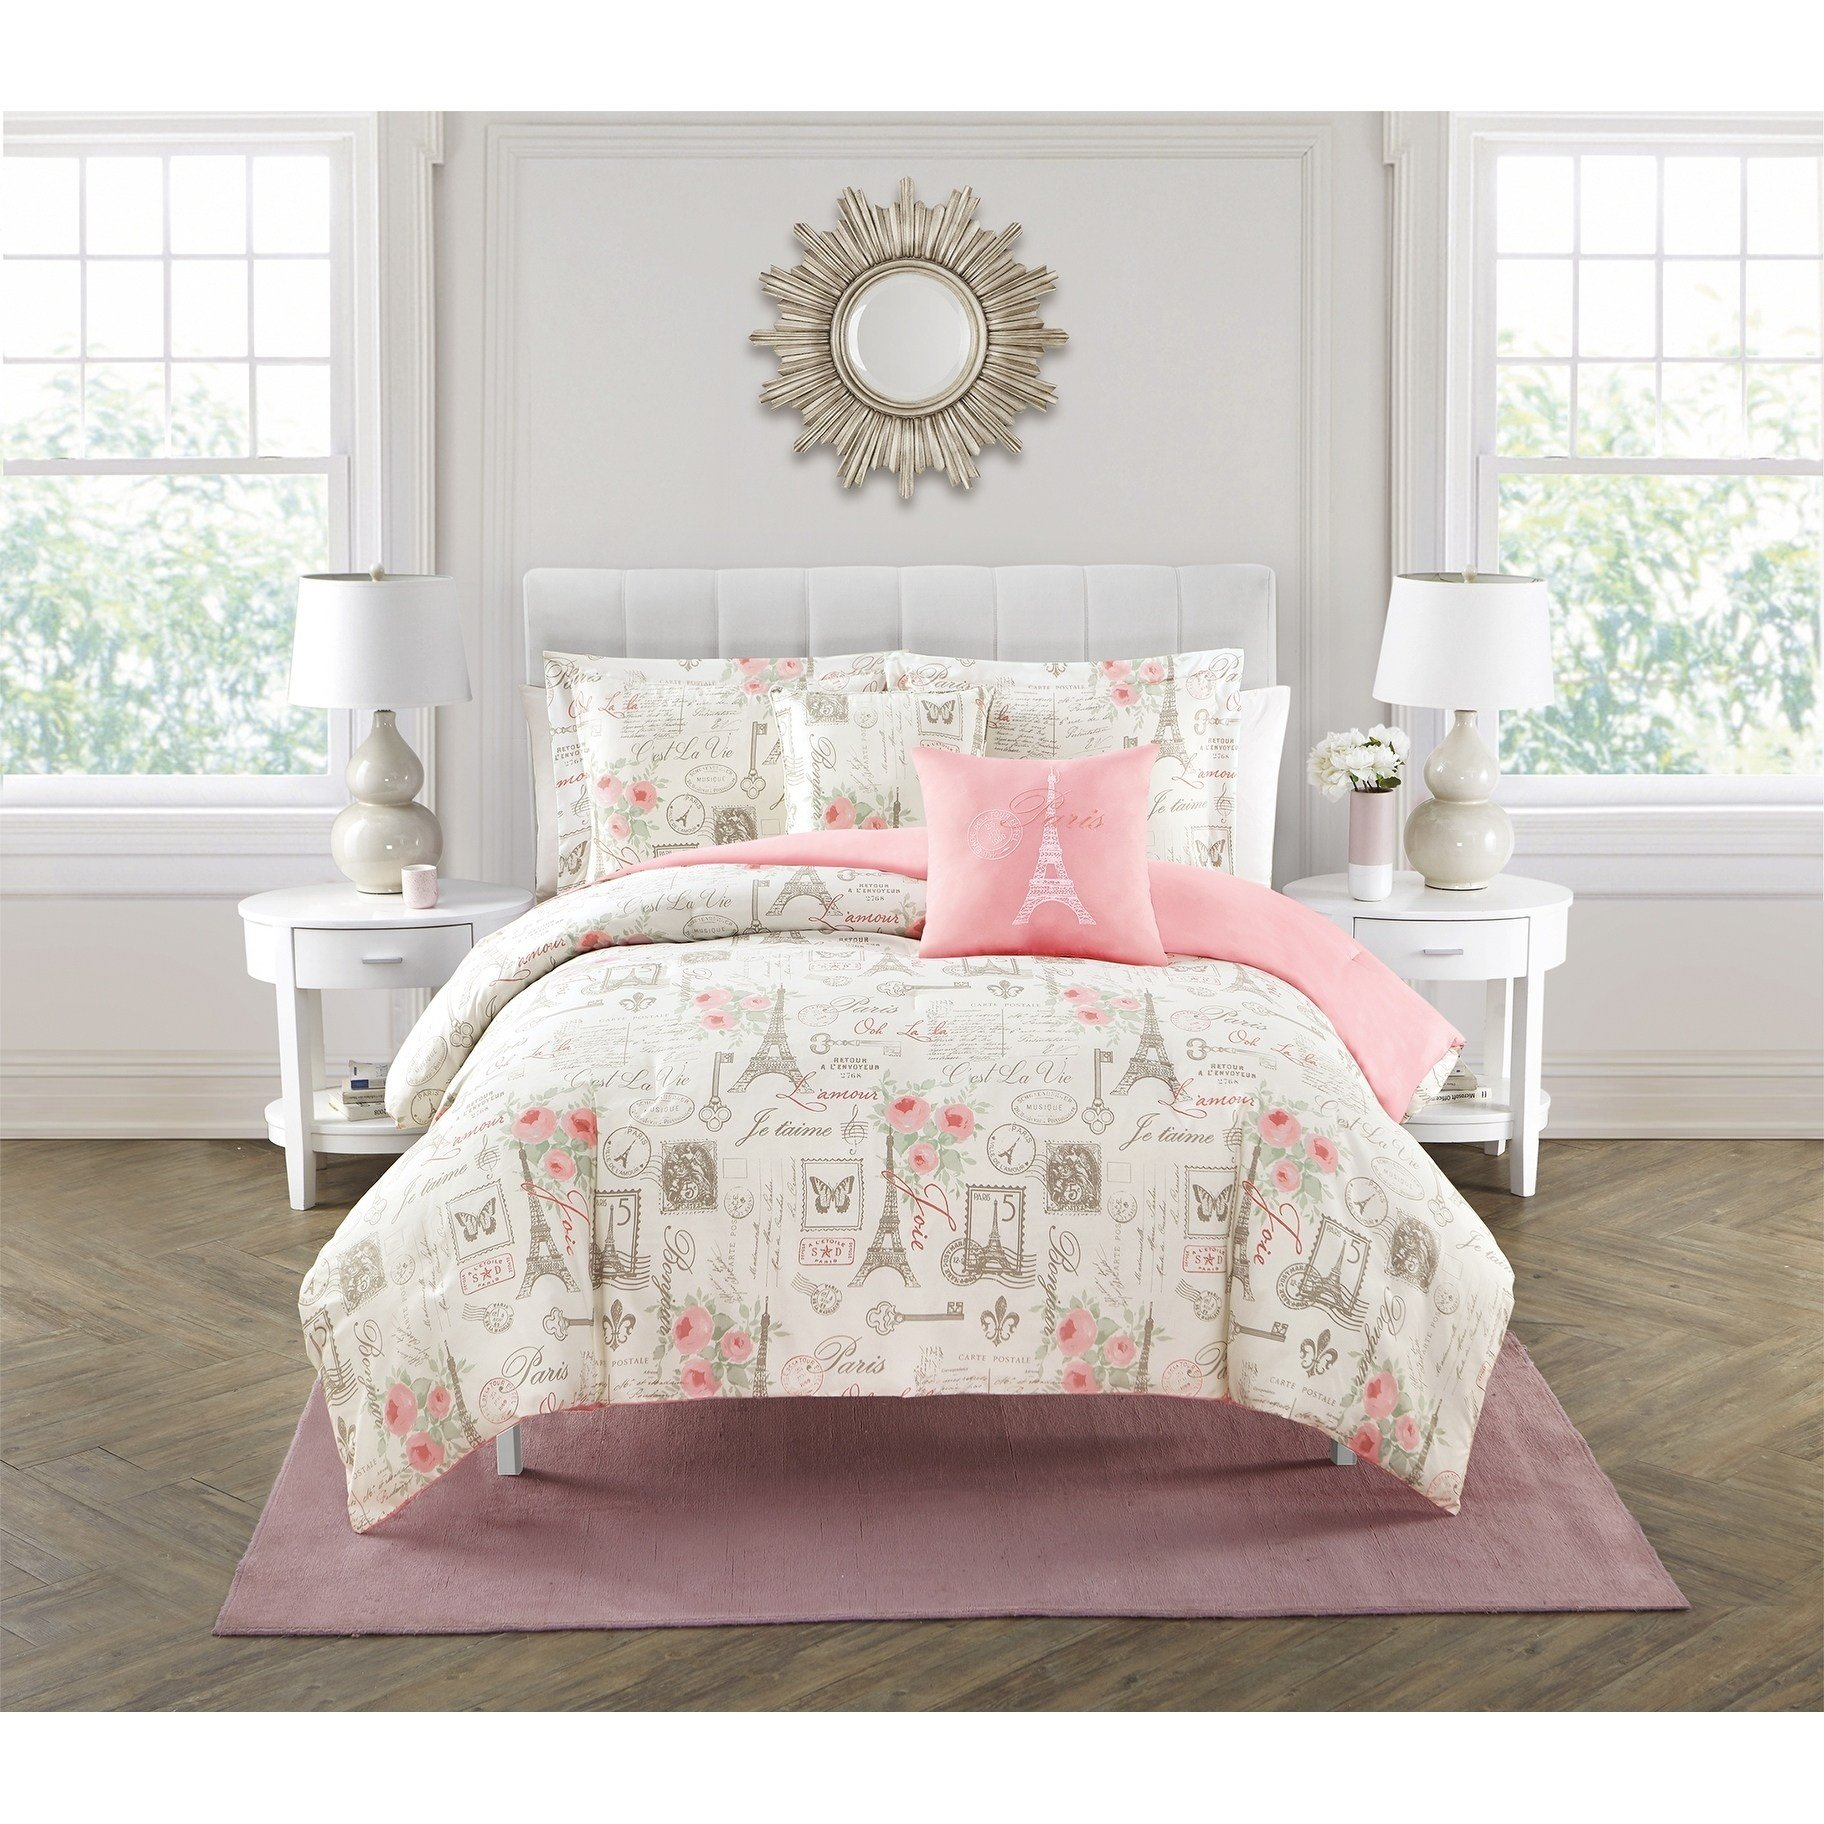 LV 5 Piece Girls Off White Beige Pink I Love Paris Comforter Queen Set, Romantic France Eiffel Tower Themed Bedding Love Key Post Card Stamp Floral Butterfly JeTaime Graphic Pattern, Polyester